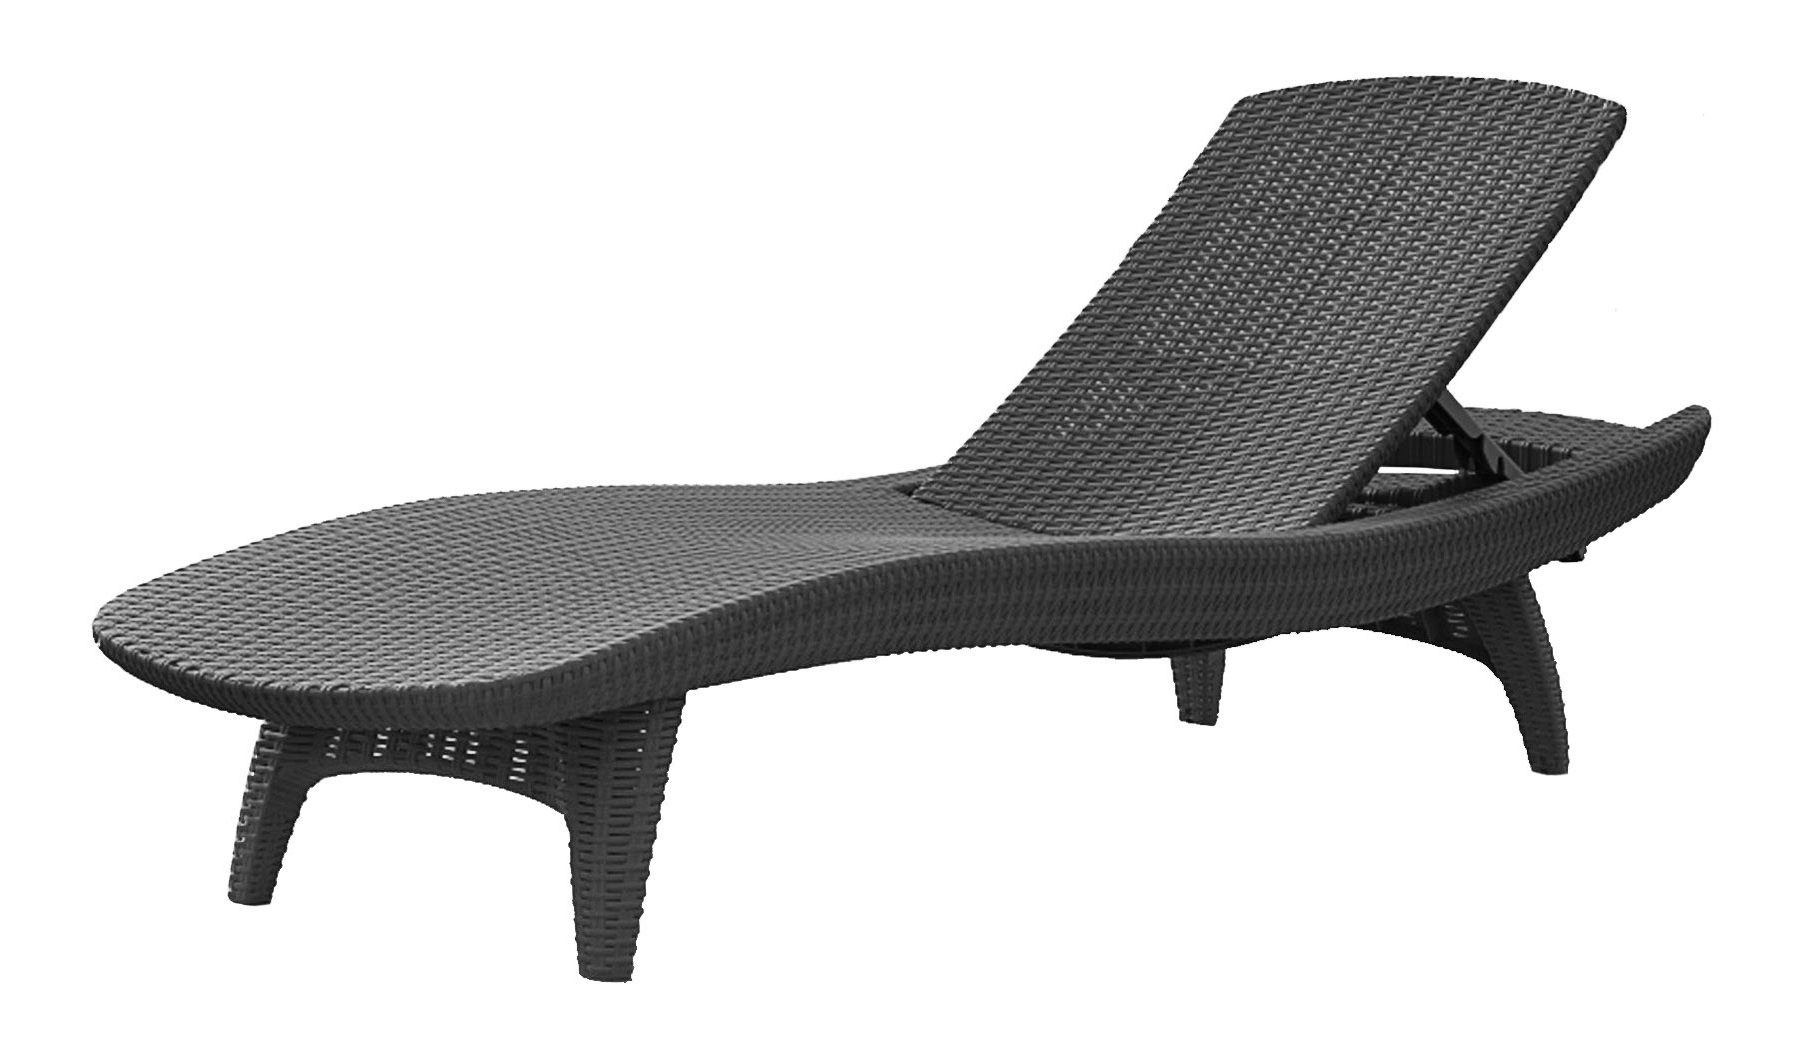 Keter Pacific Chaise Sun Lounger And Side Table Set, Charcoal For Favorite Keter Chaise Lounges (View 2 of 15)